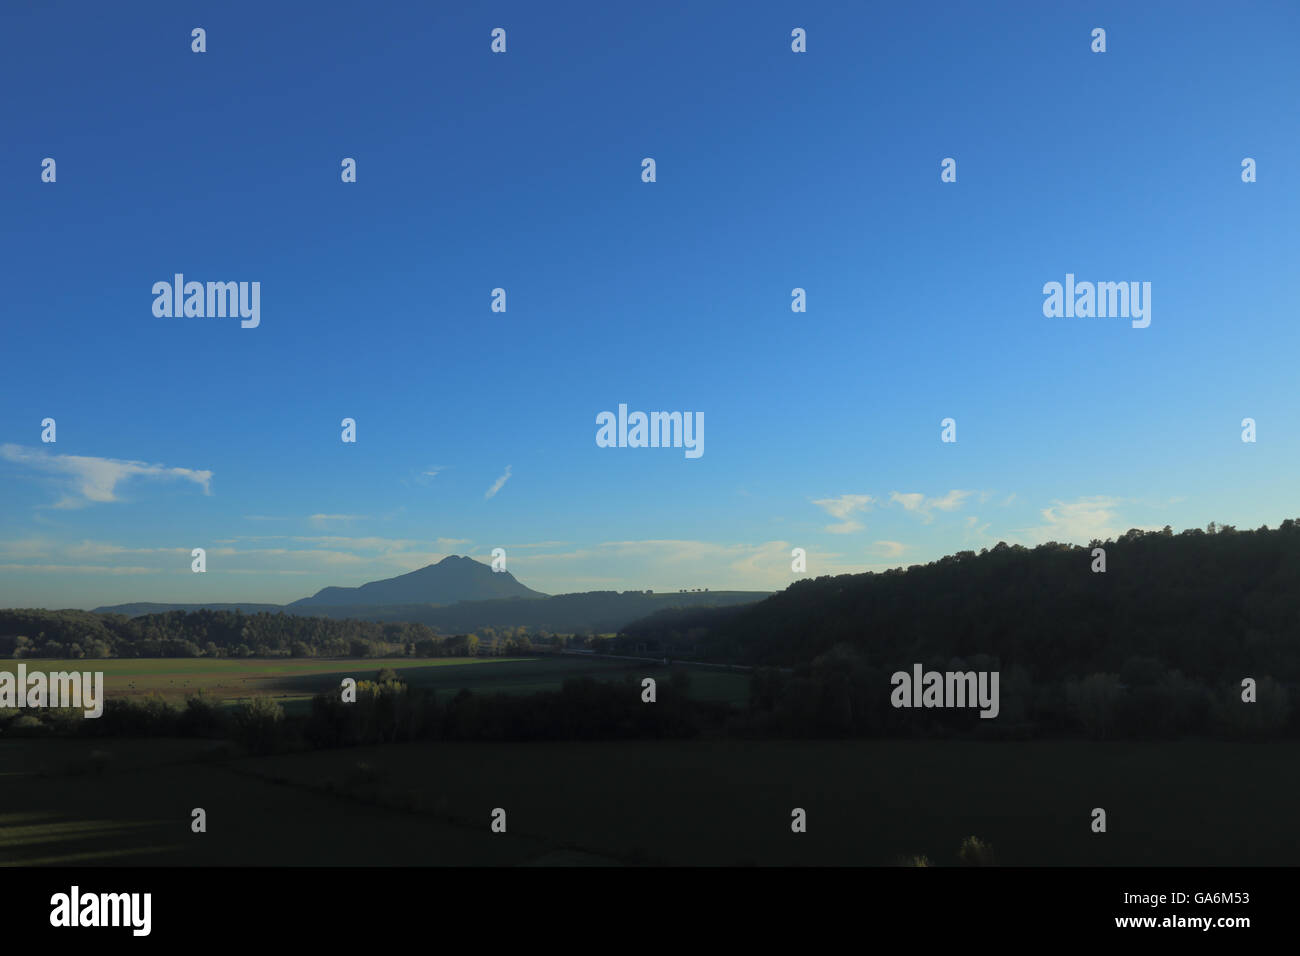 Panoramic view over Mount Soratte - Stock Image